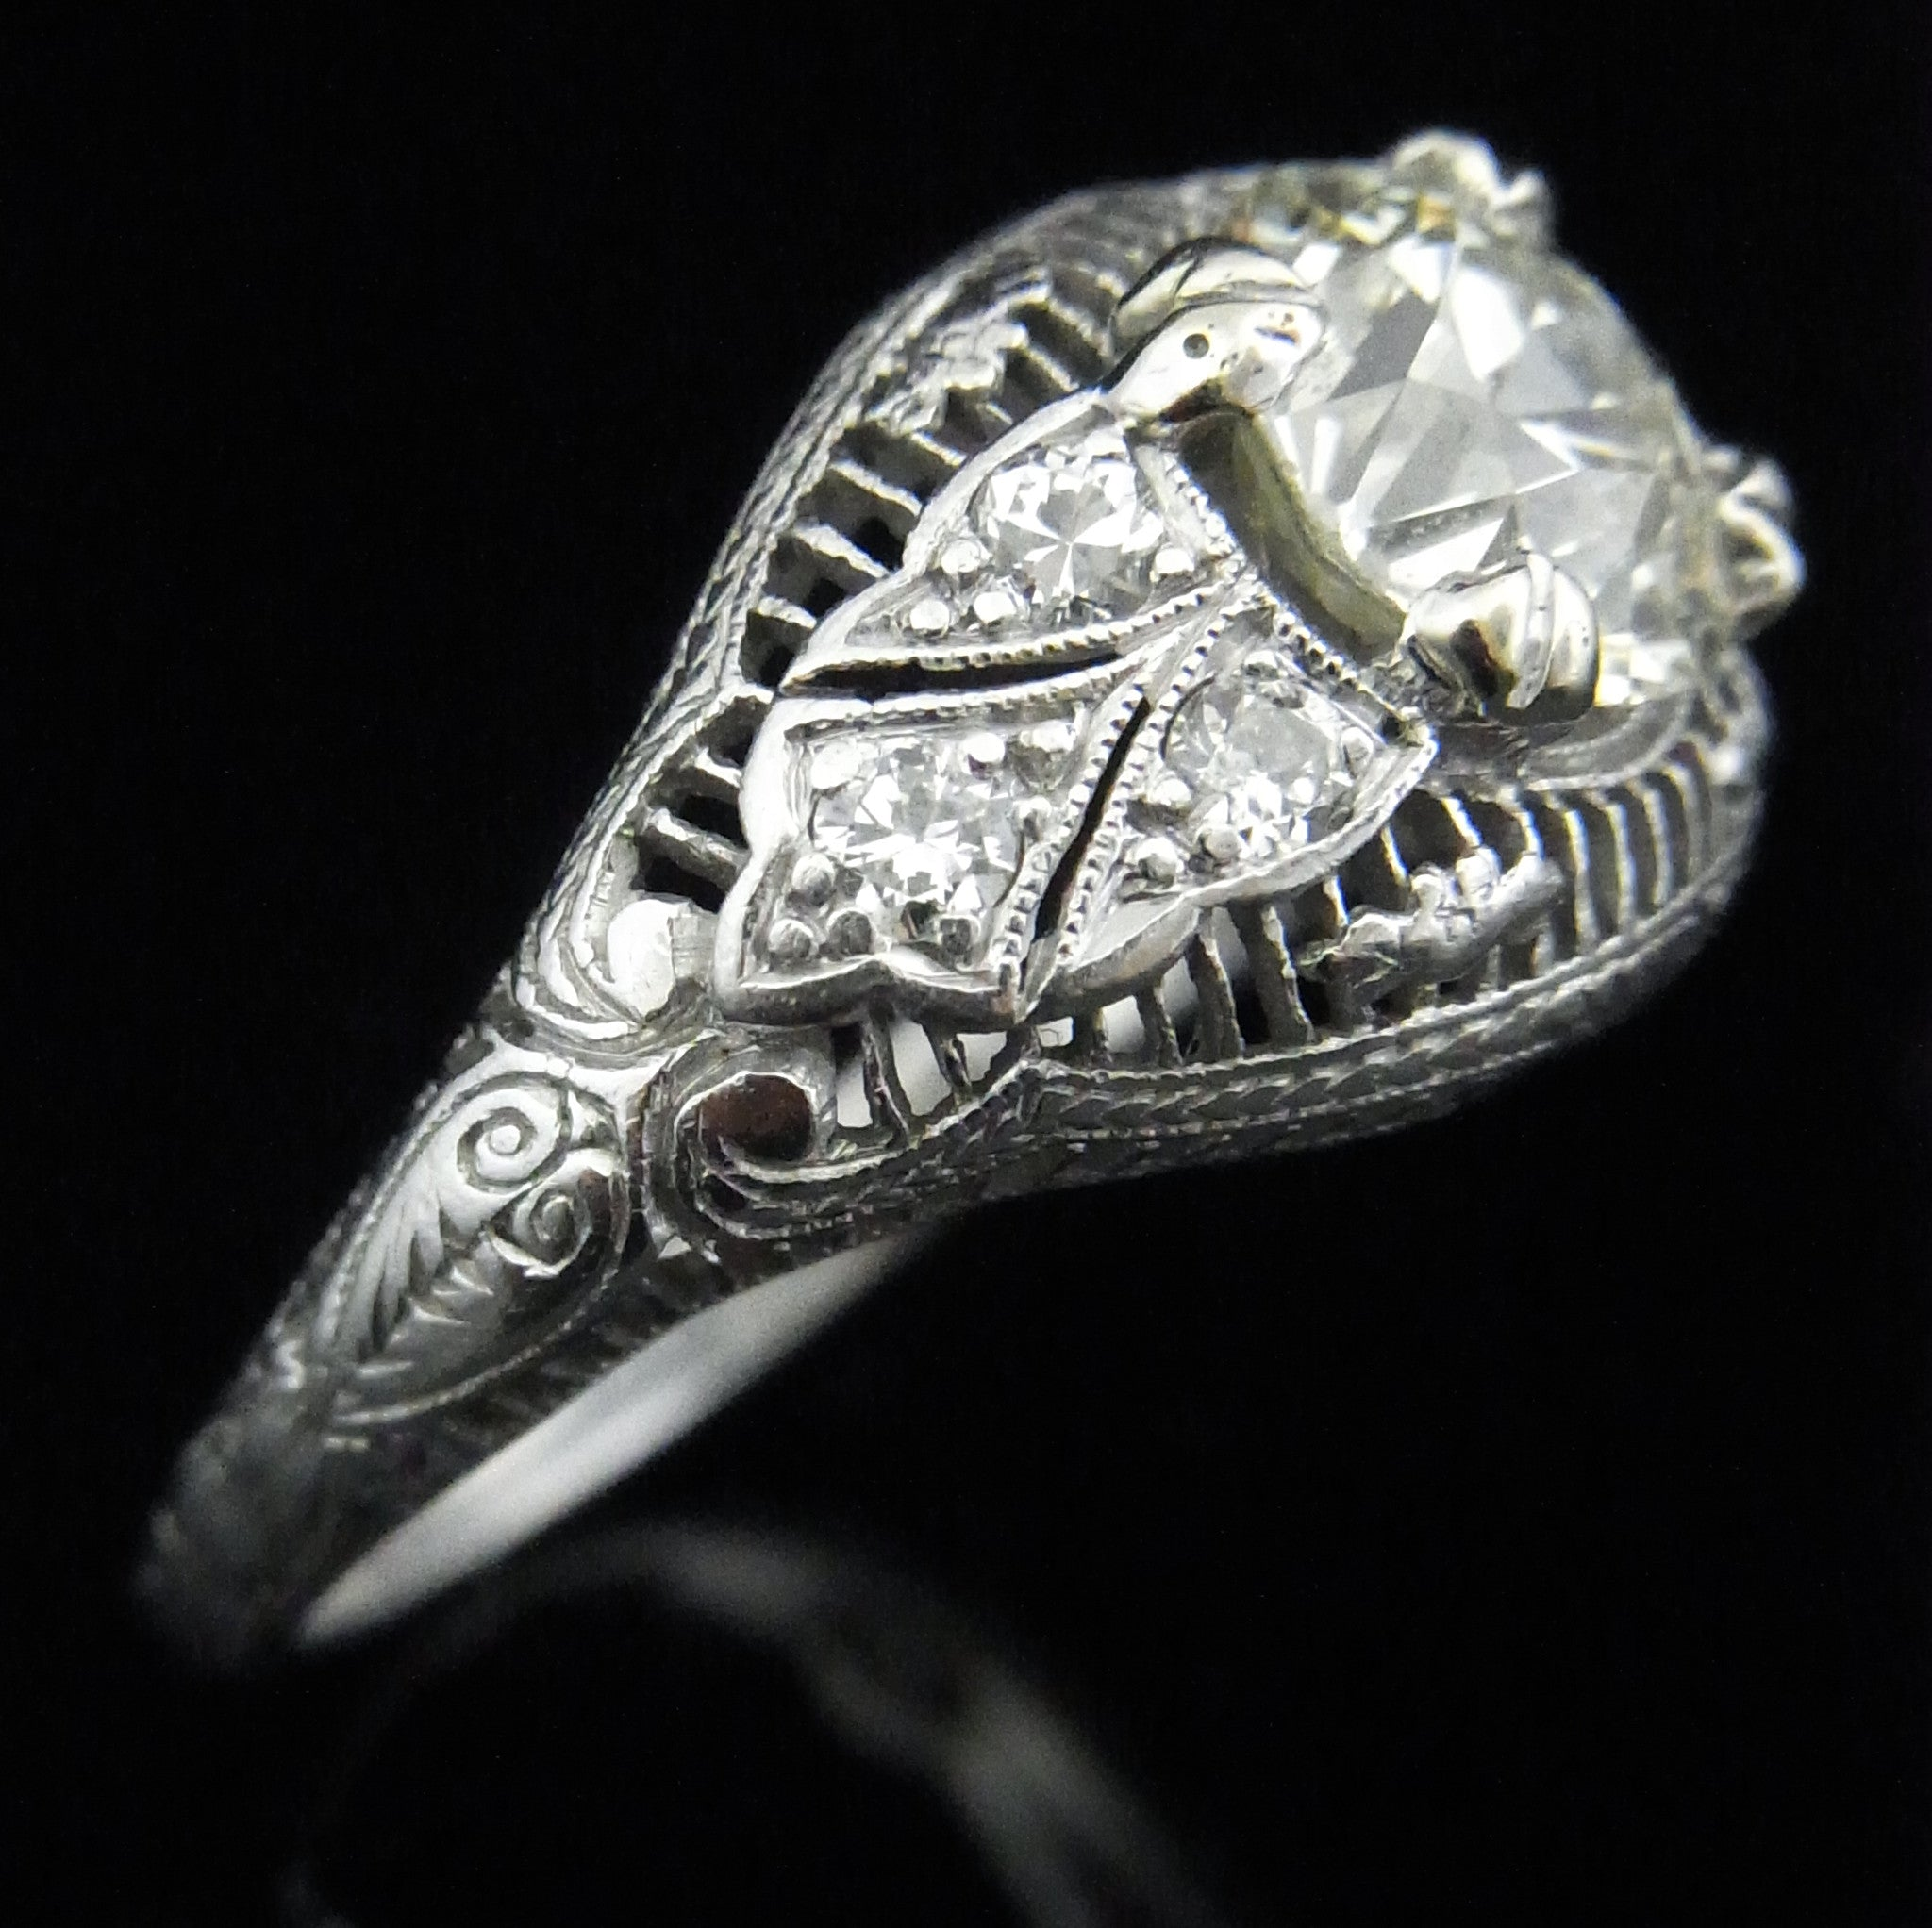 northern ring scintillation in star diamond tw white gold